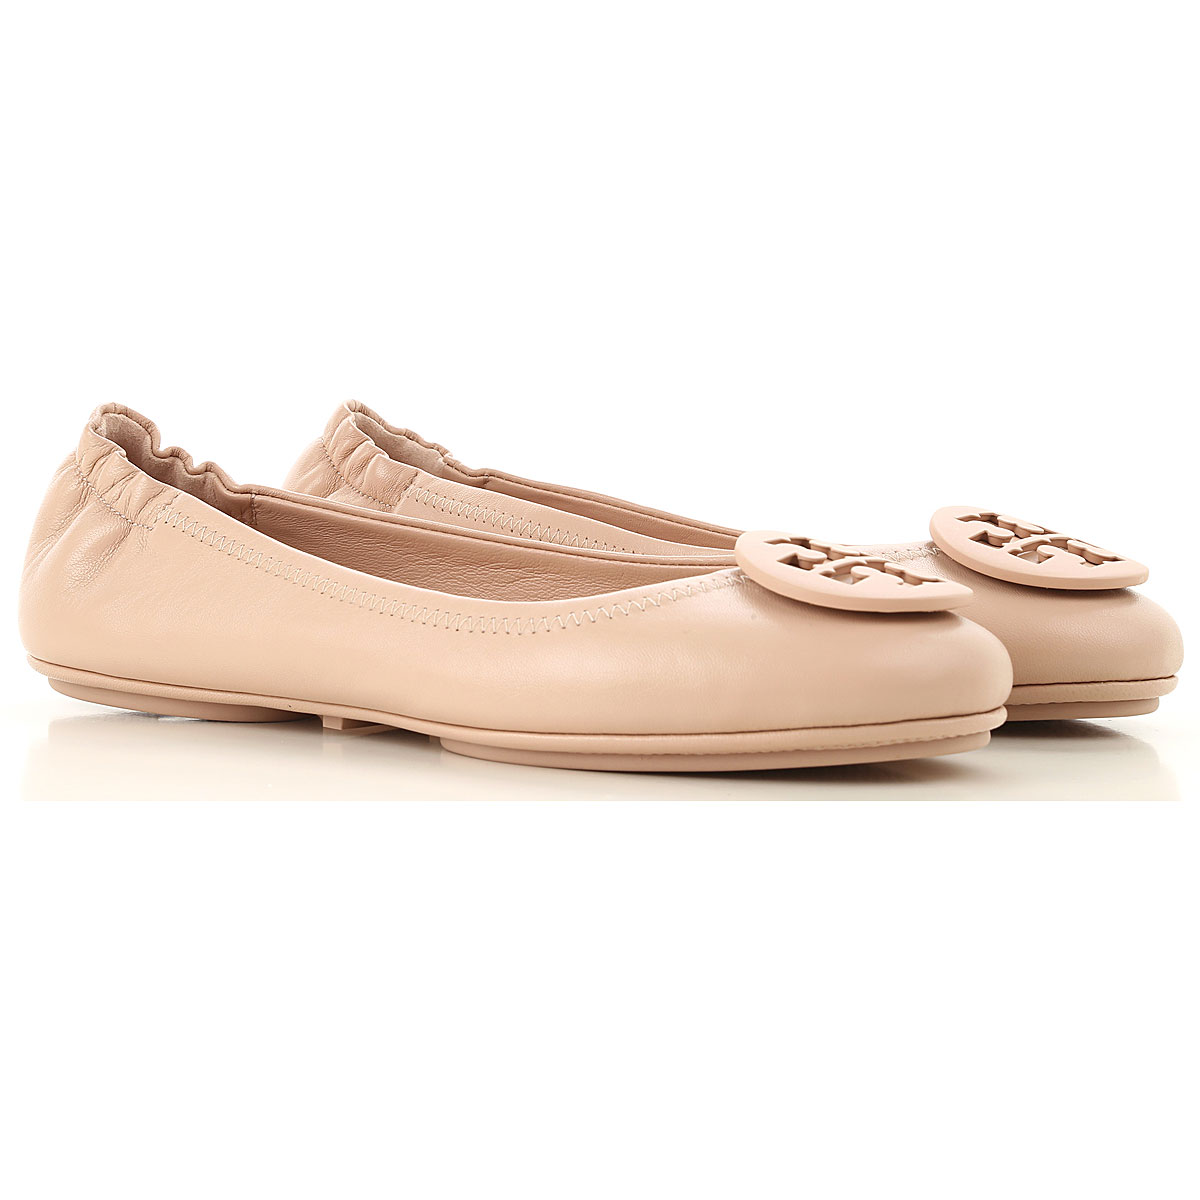 Tory Burch Ballet Flats Ballerina Shoes for Women On Sale, Sand, Leather, 2019, 5 7